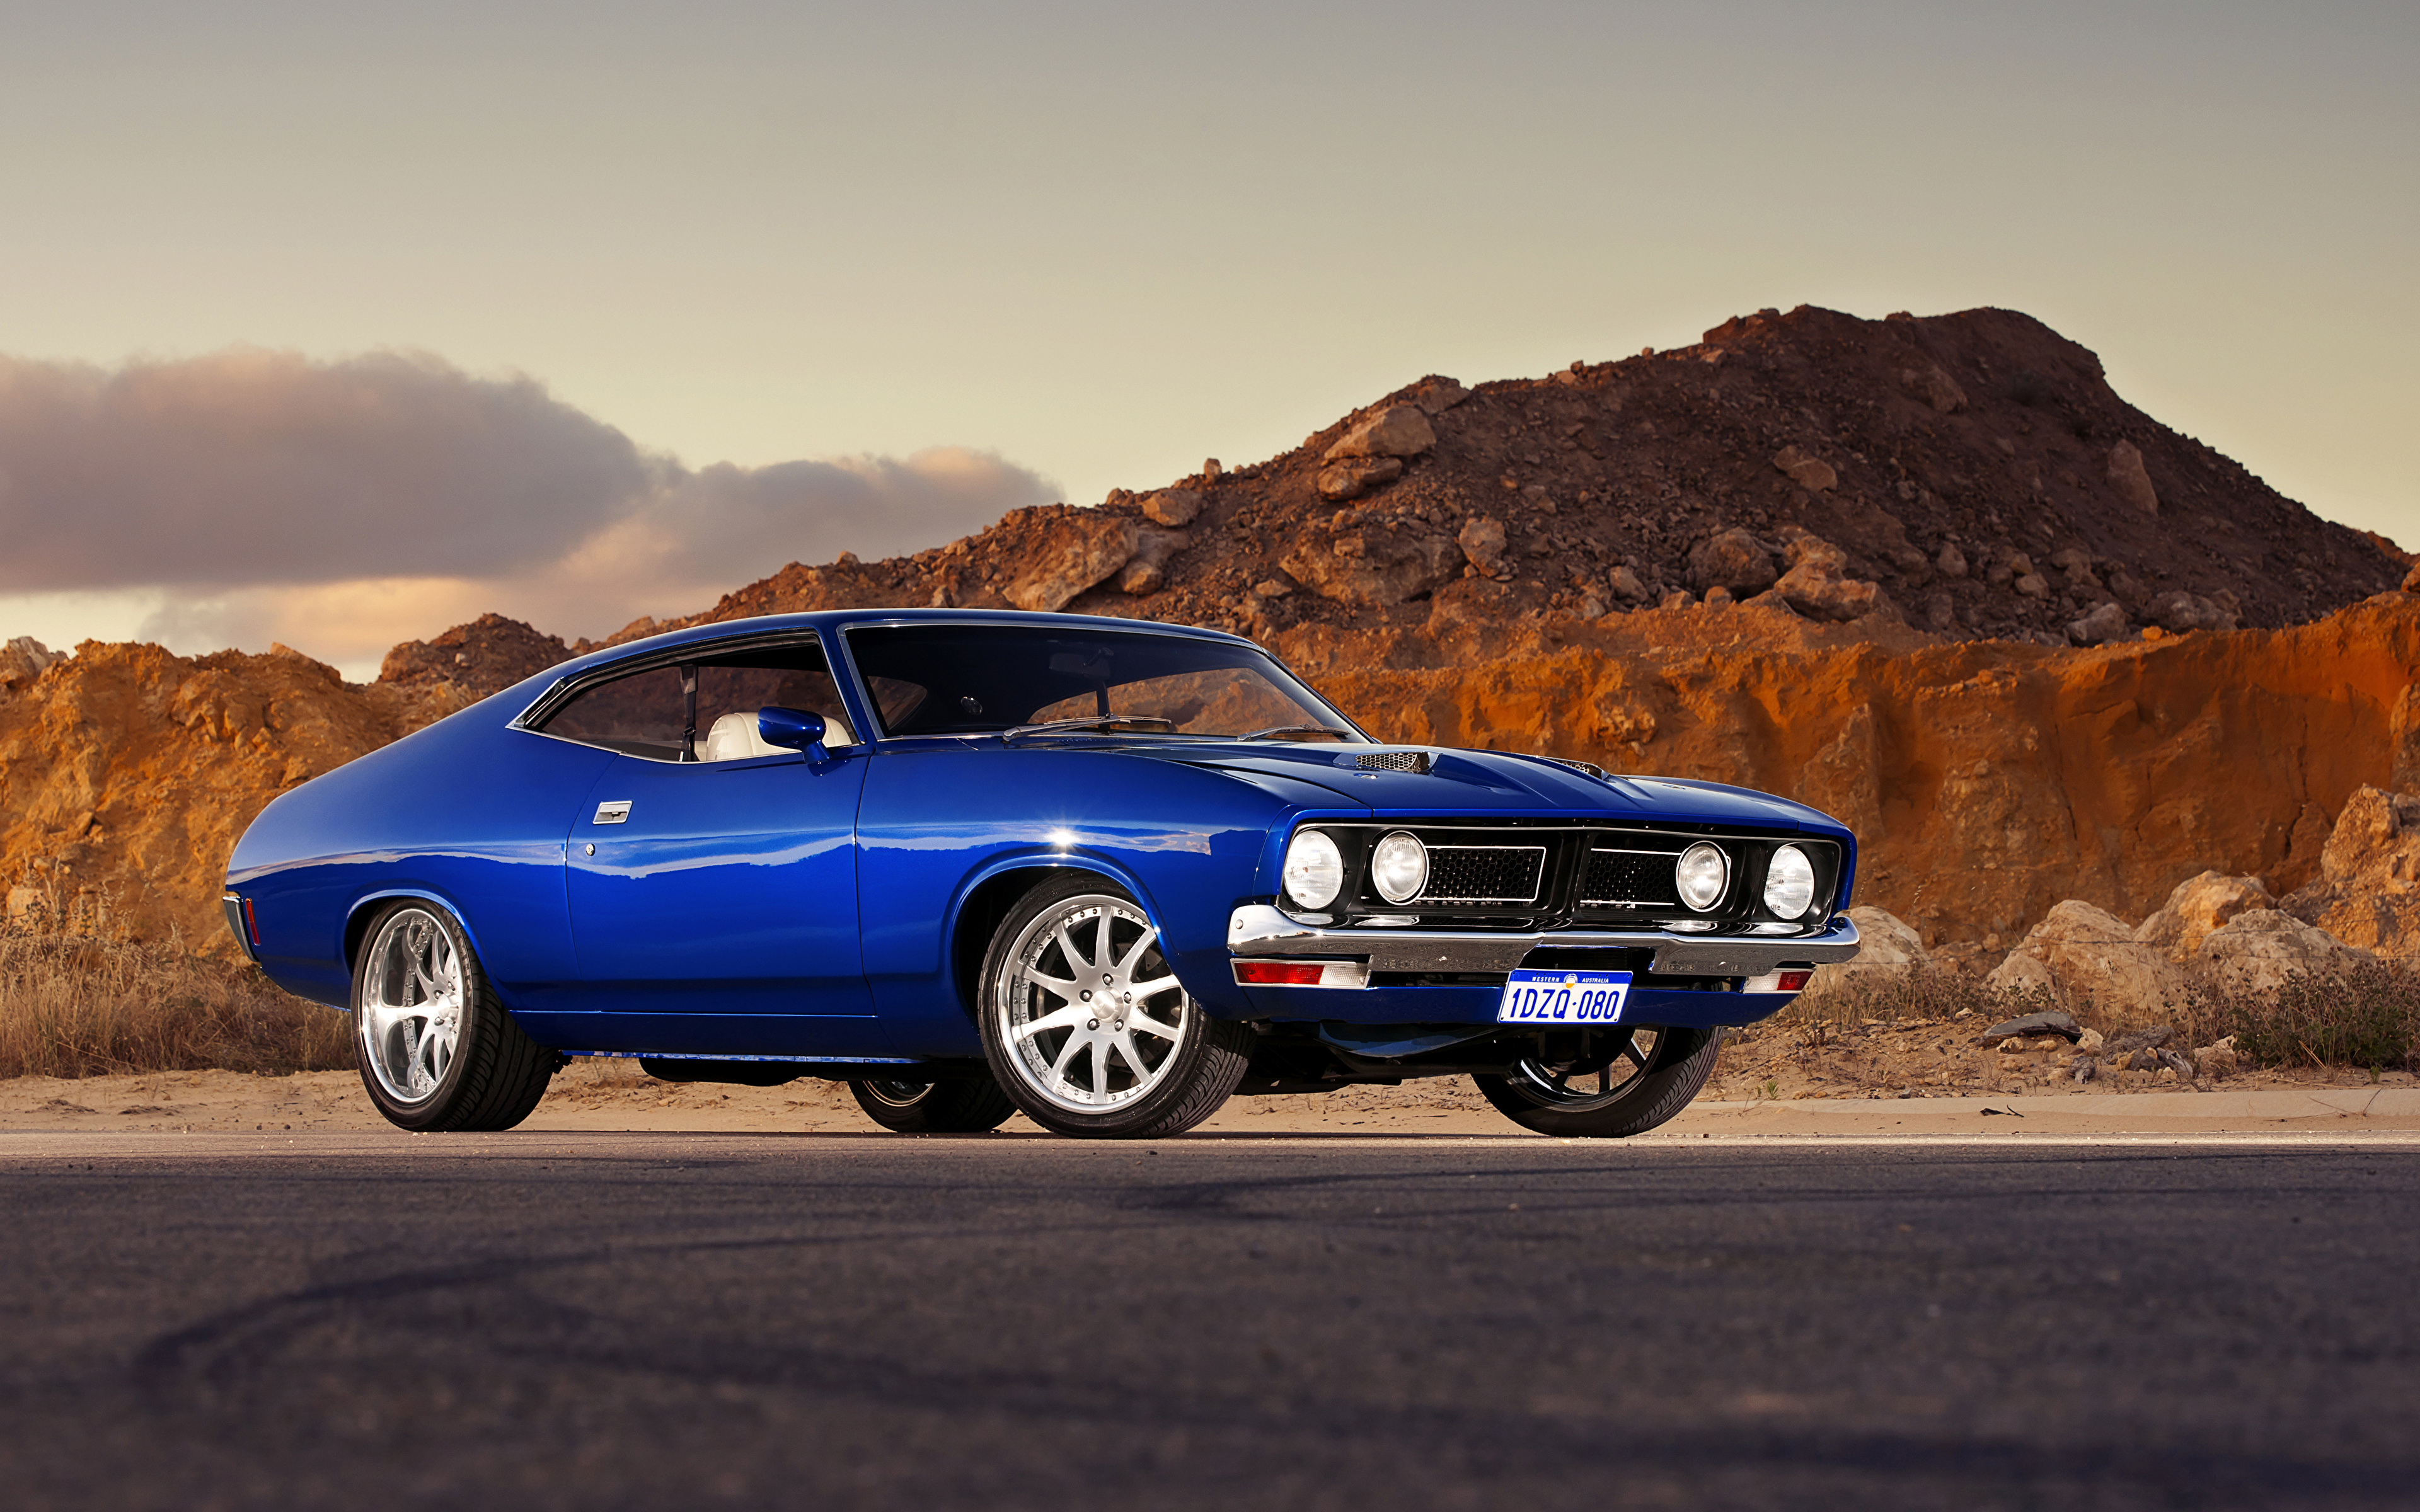 3840x2400 - Ford Falcon Wallpapers 18